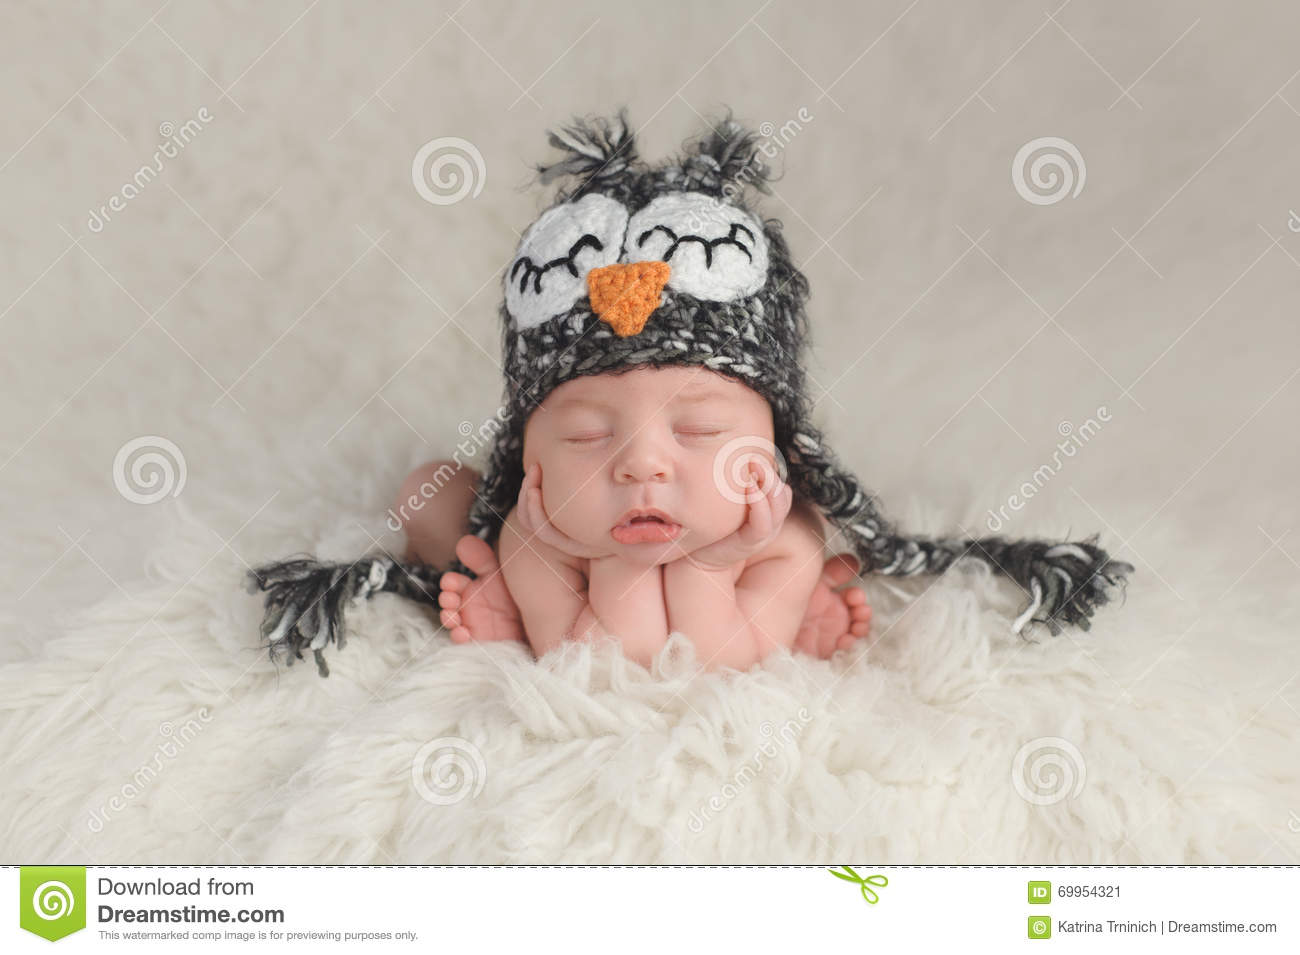 eddc306dfb0 Newborn Baby Boy Wearing An Owl Hat Stock Image - Image of costume ...